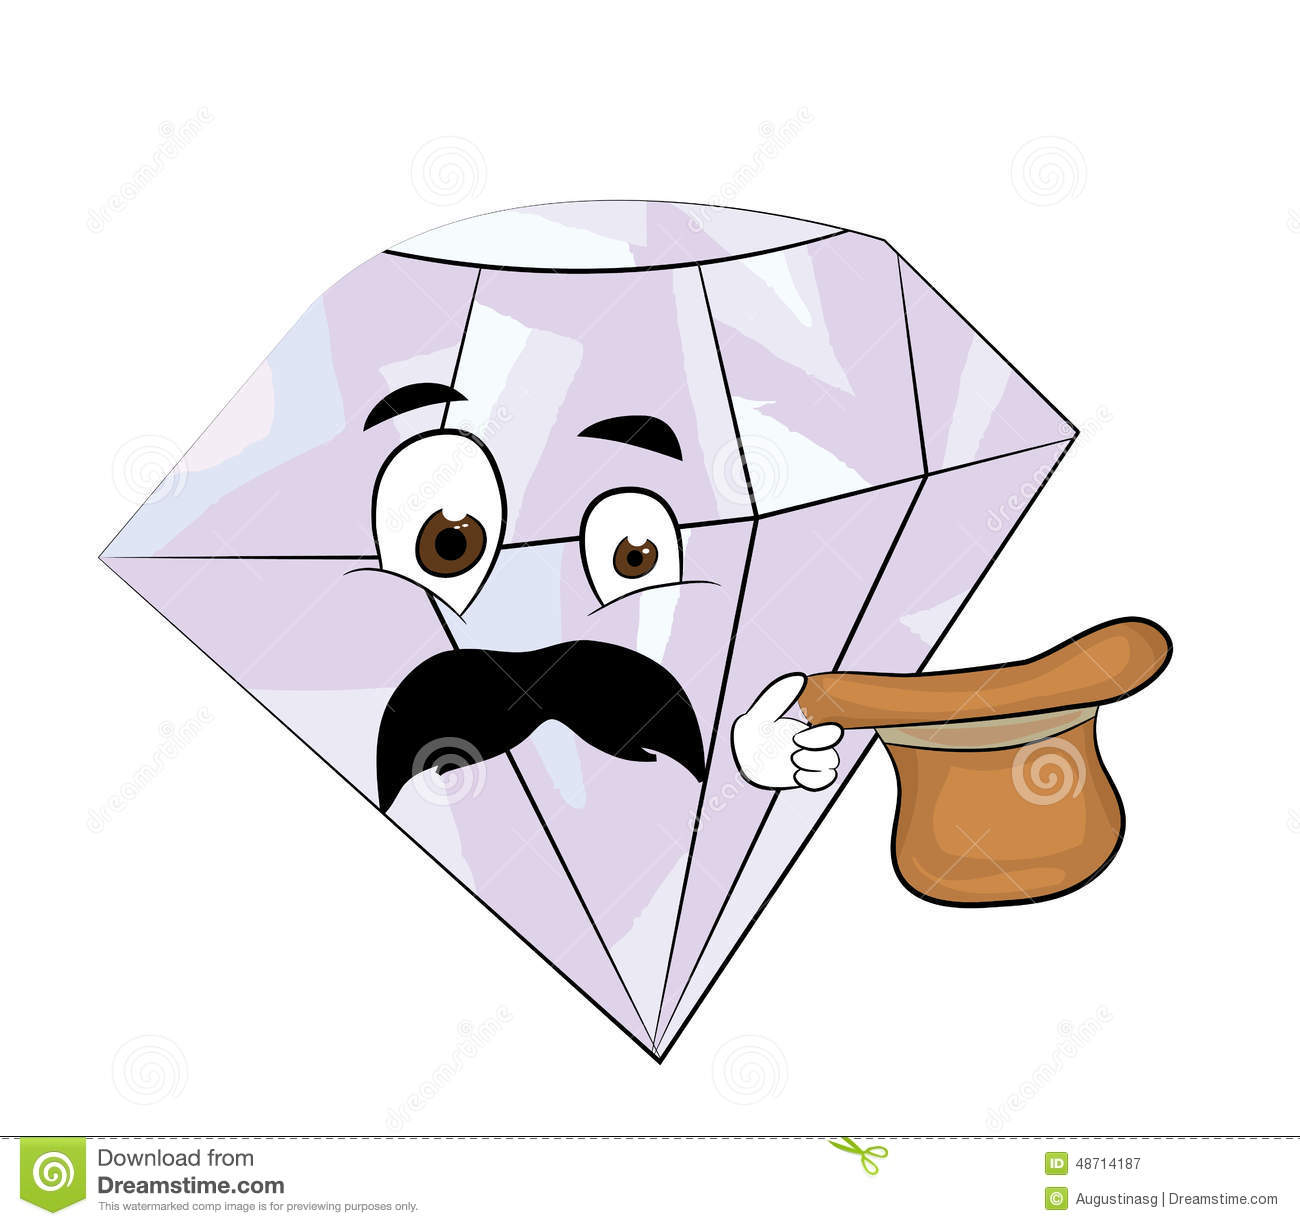 Surprised Diamond Cartoon Stock Illustration - Image: 48714187